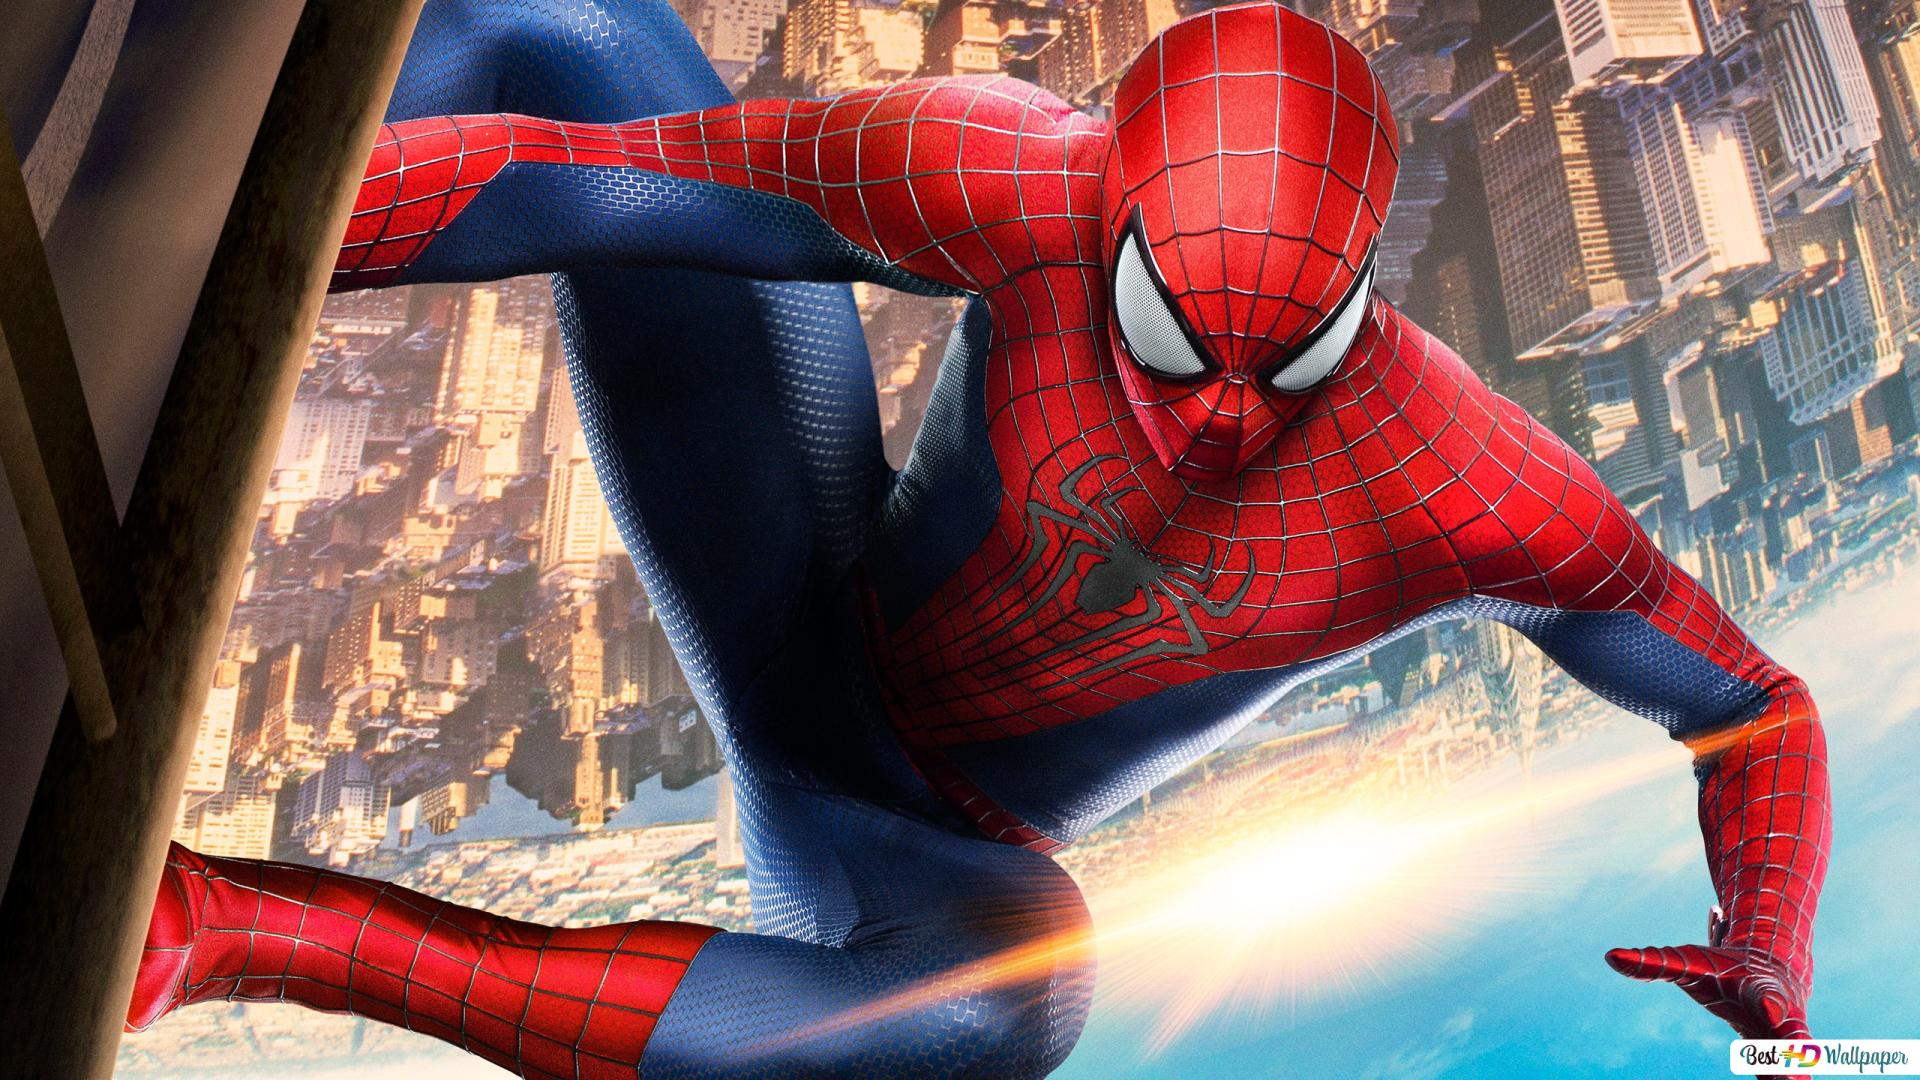 The Amazing Spiderman 2 Spiderman Movie Hd Wallpaper Download